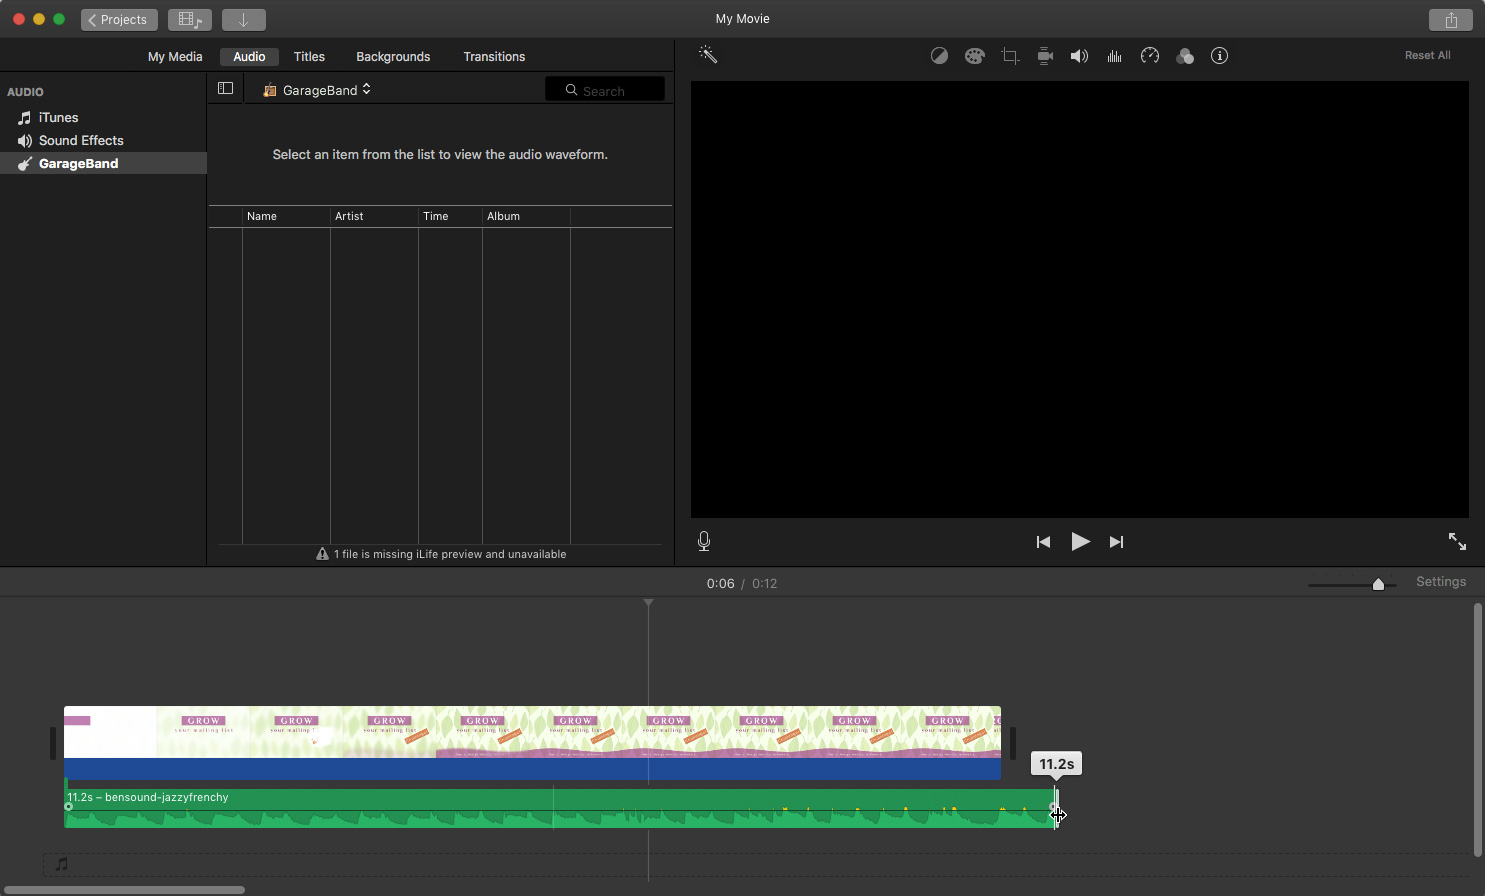 iMovie: Shortening the music track